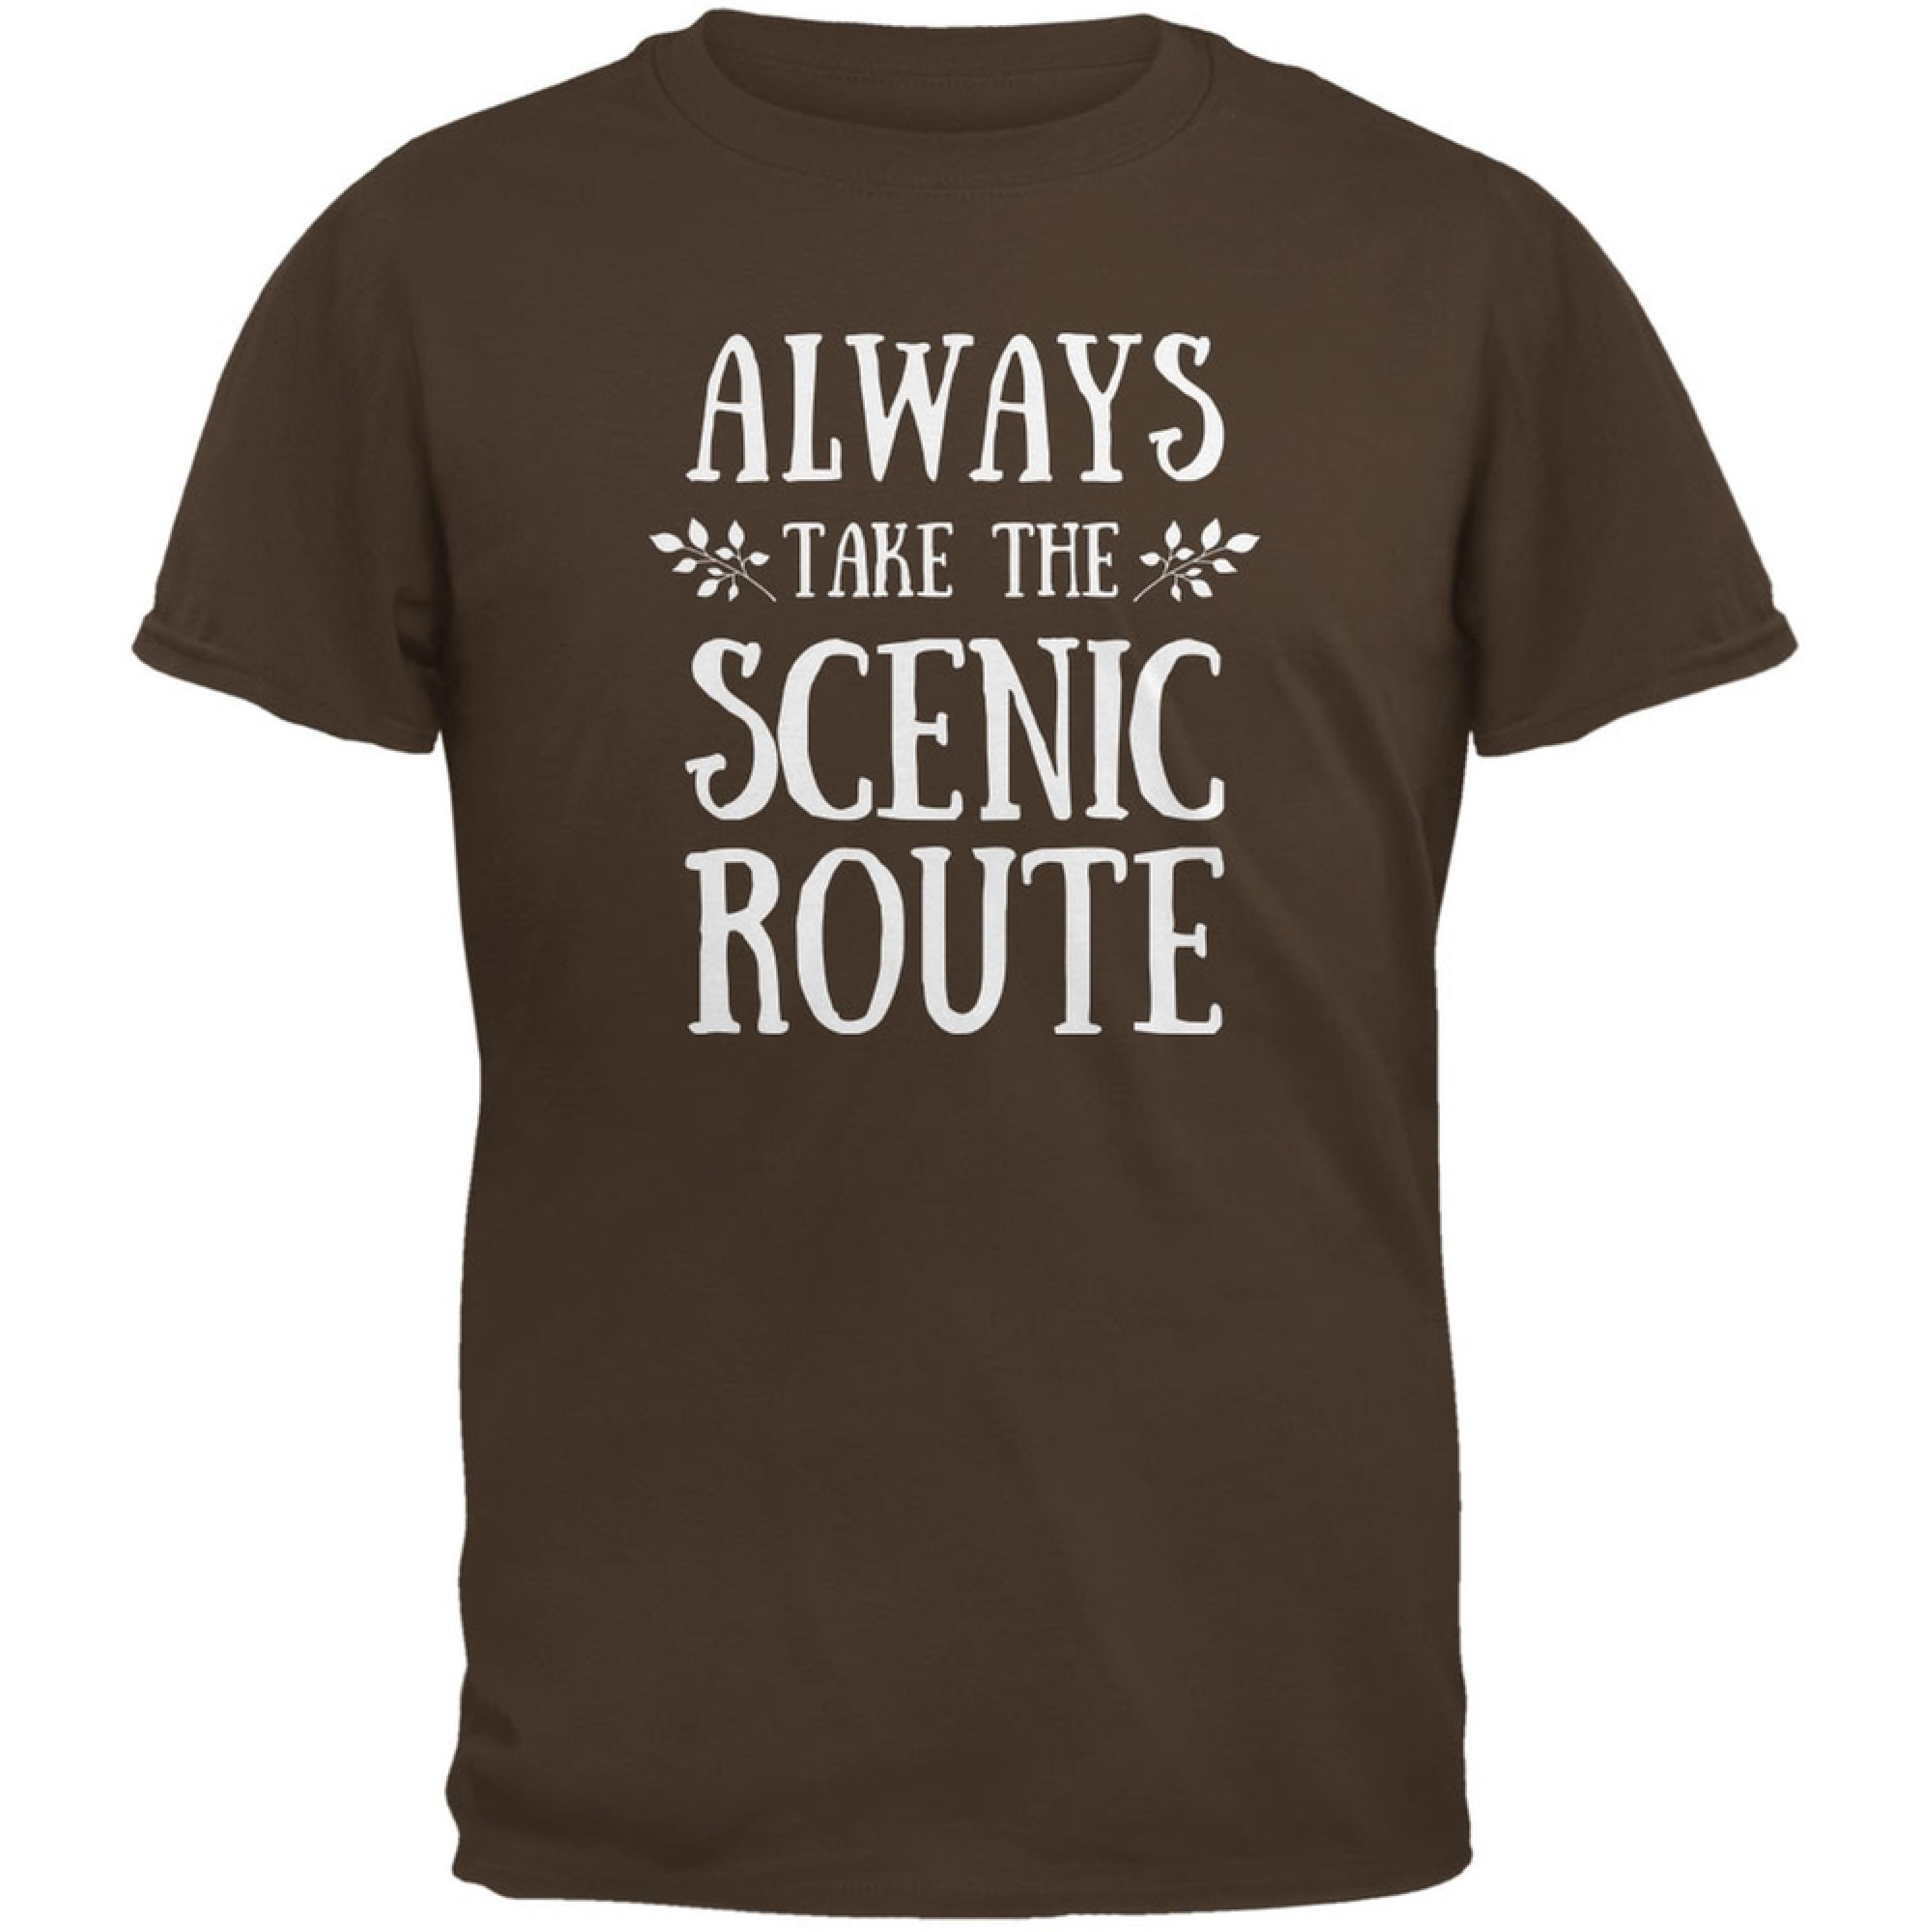 Hiking Always Take the Scenic Route Brown Youth T-Shirt